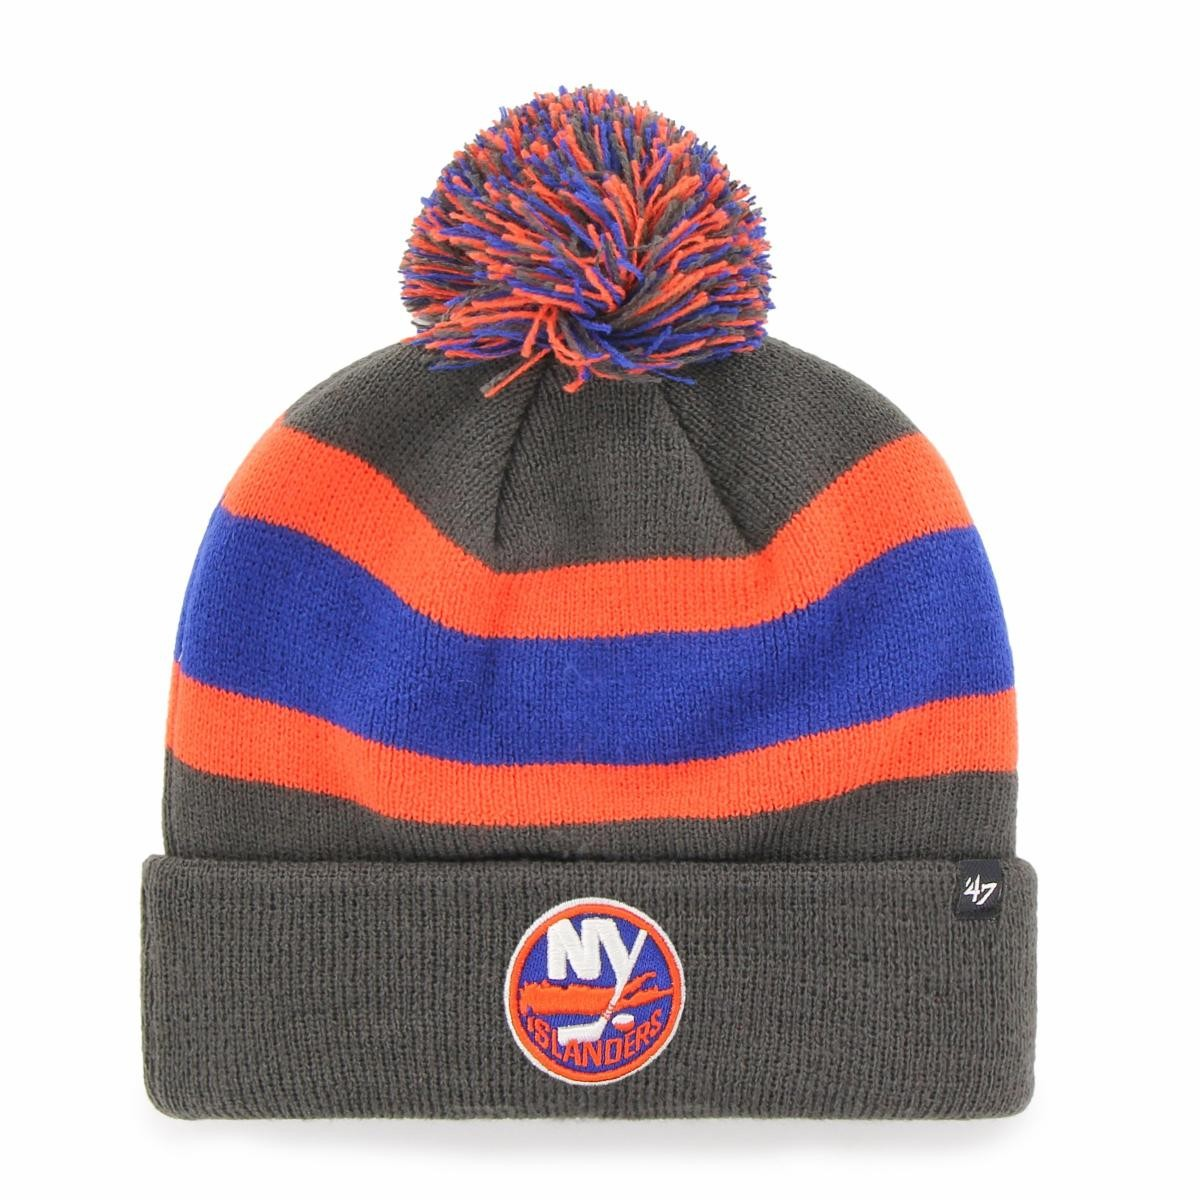 BRAND 47 New York Islanders Breakaway Cuff Knit Winter Hat